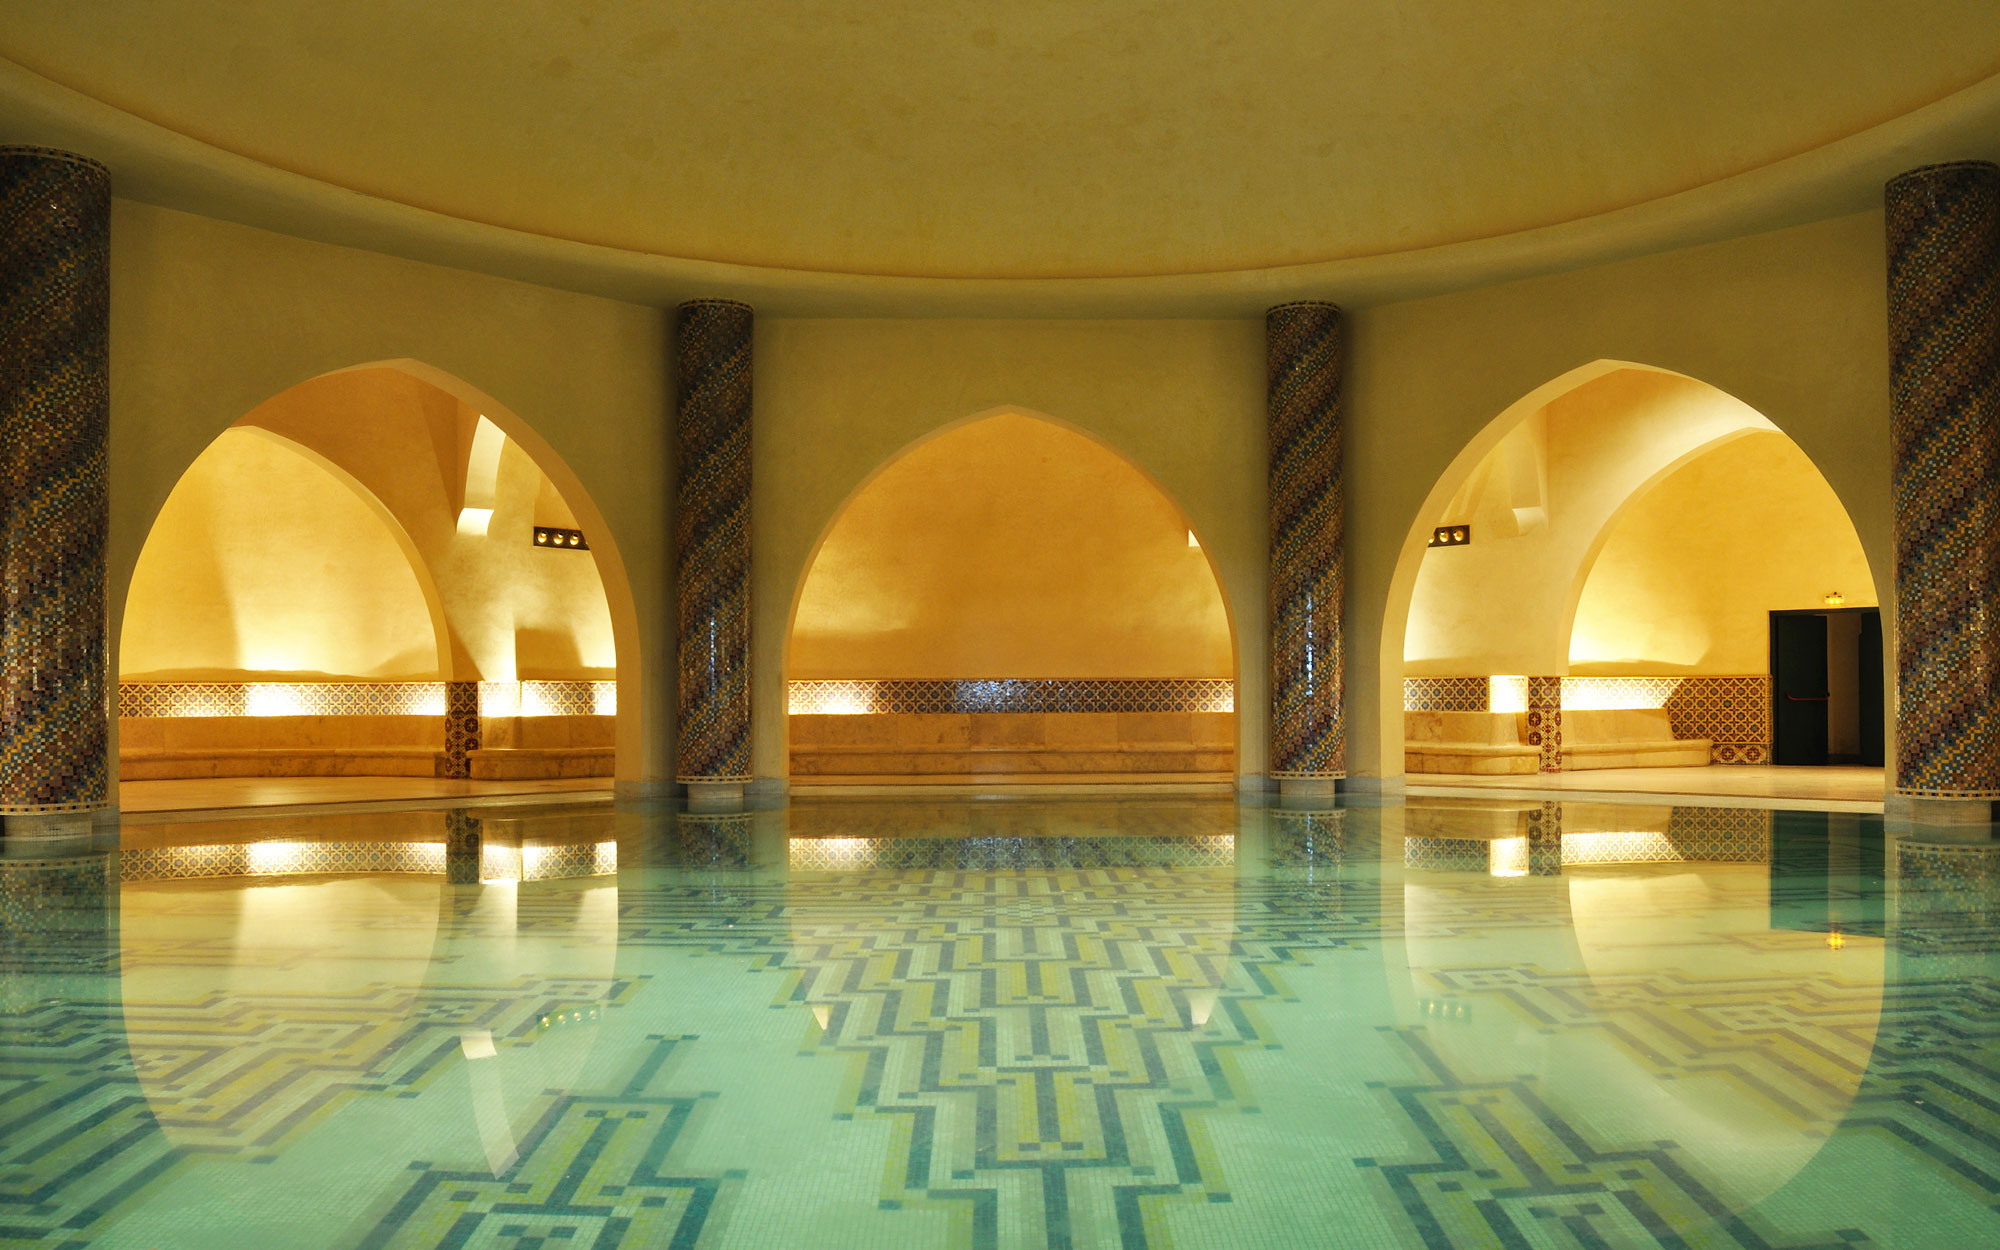 Miami On The Cheap >> Hammam Nikhil - One of the Best Baths in Ain Itti, Marrakech